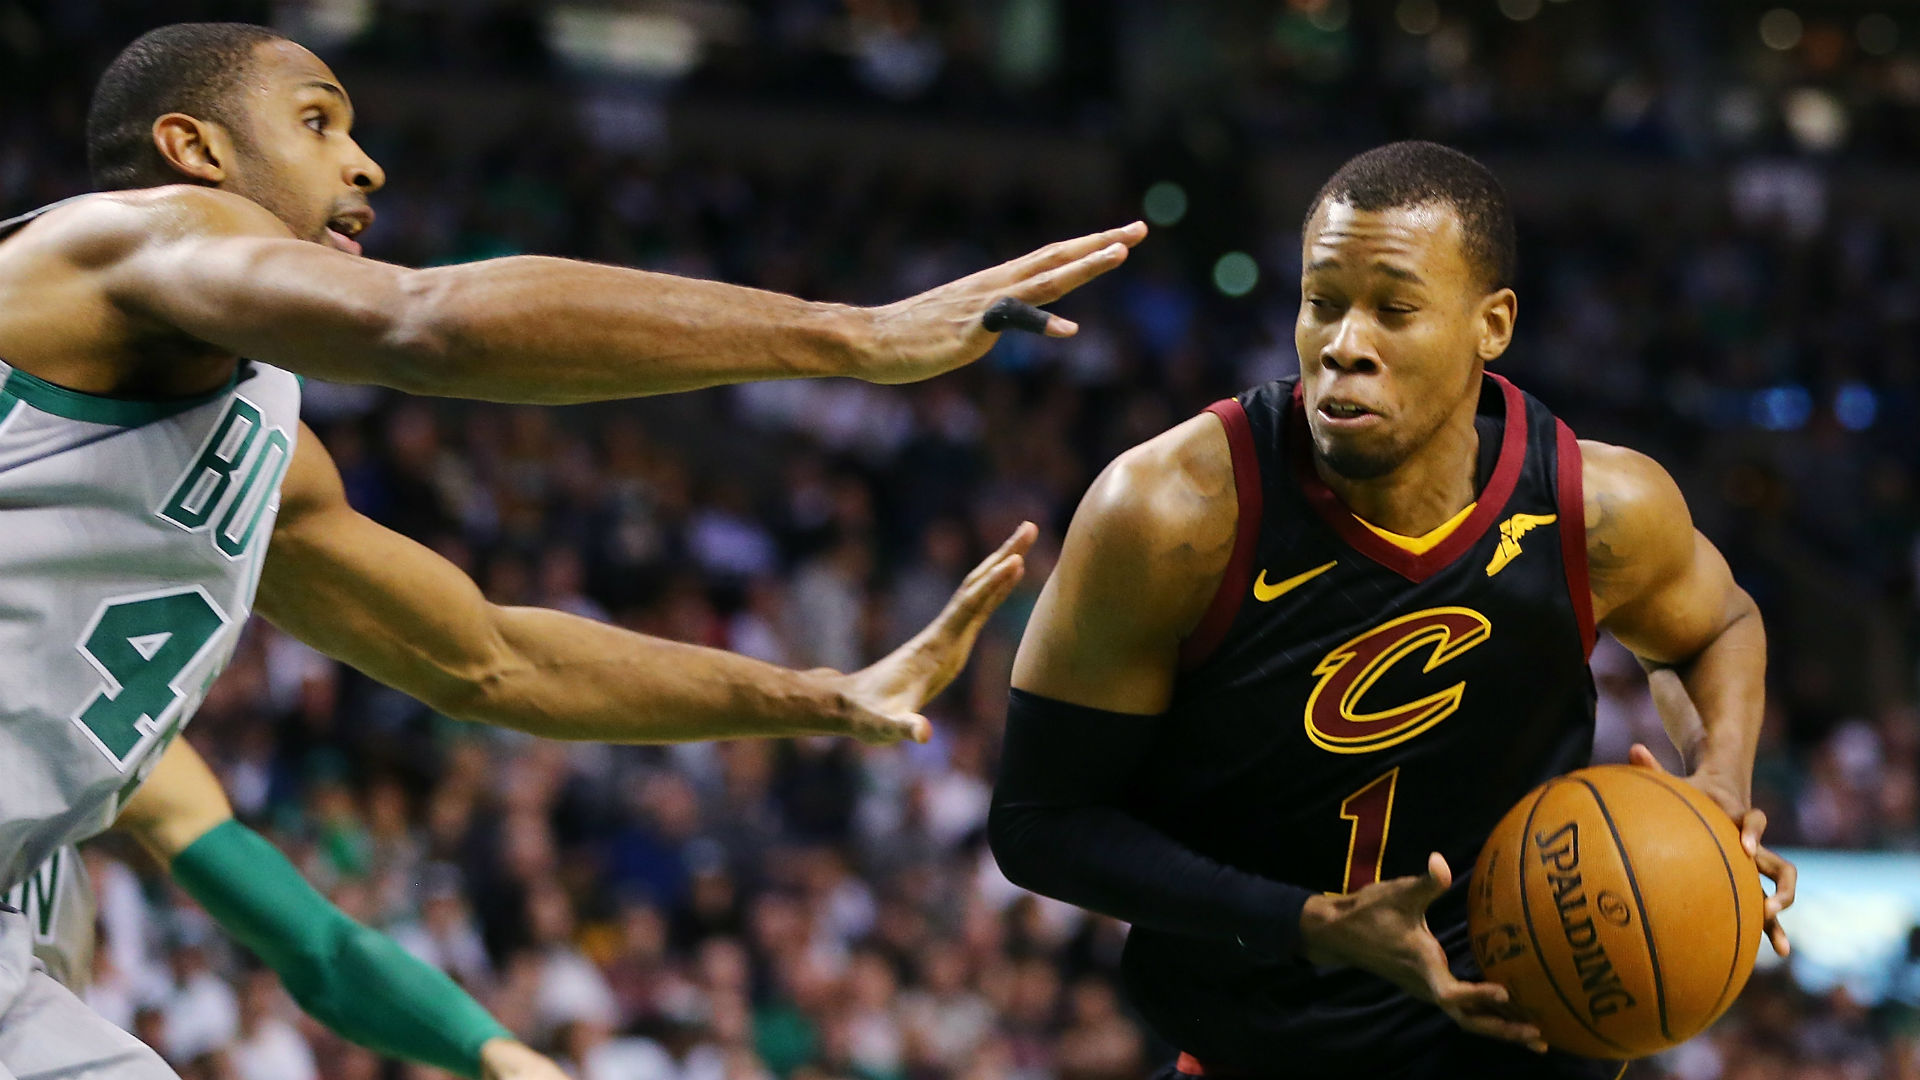 Paul Pierce Day spoiled by LeBron and Cavs